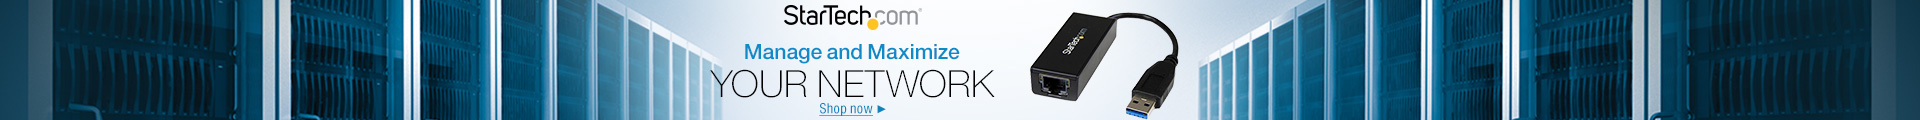 Manage and Maximize your Network